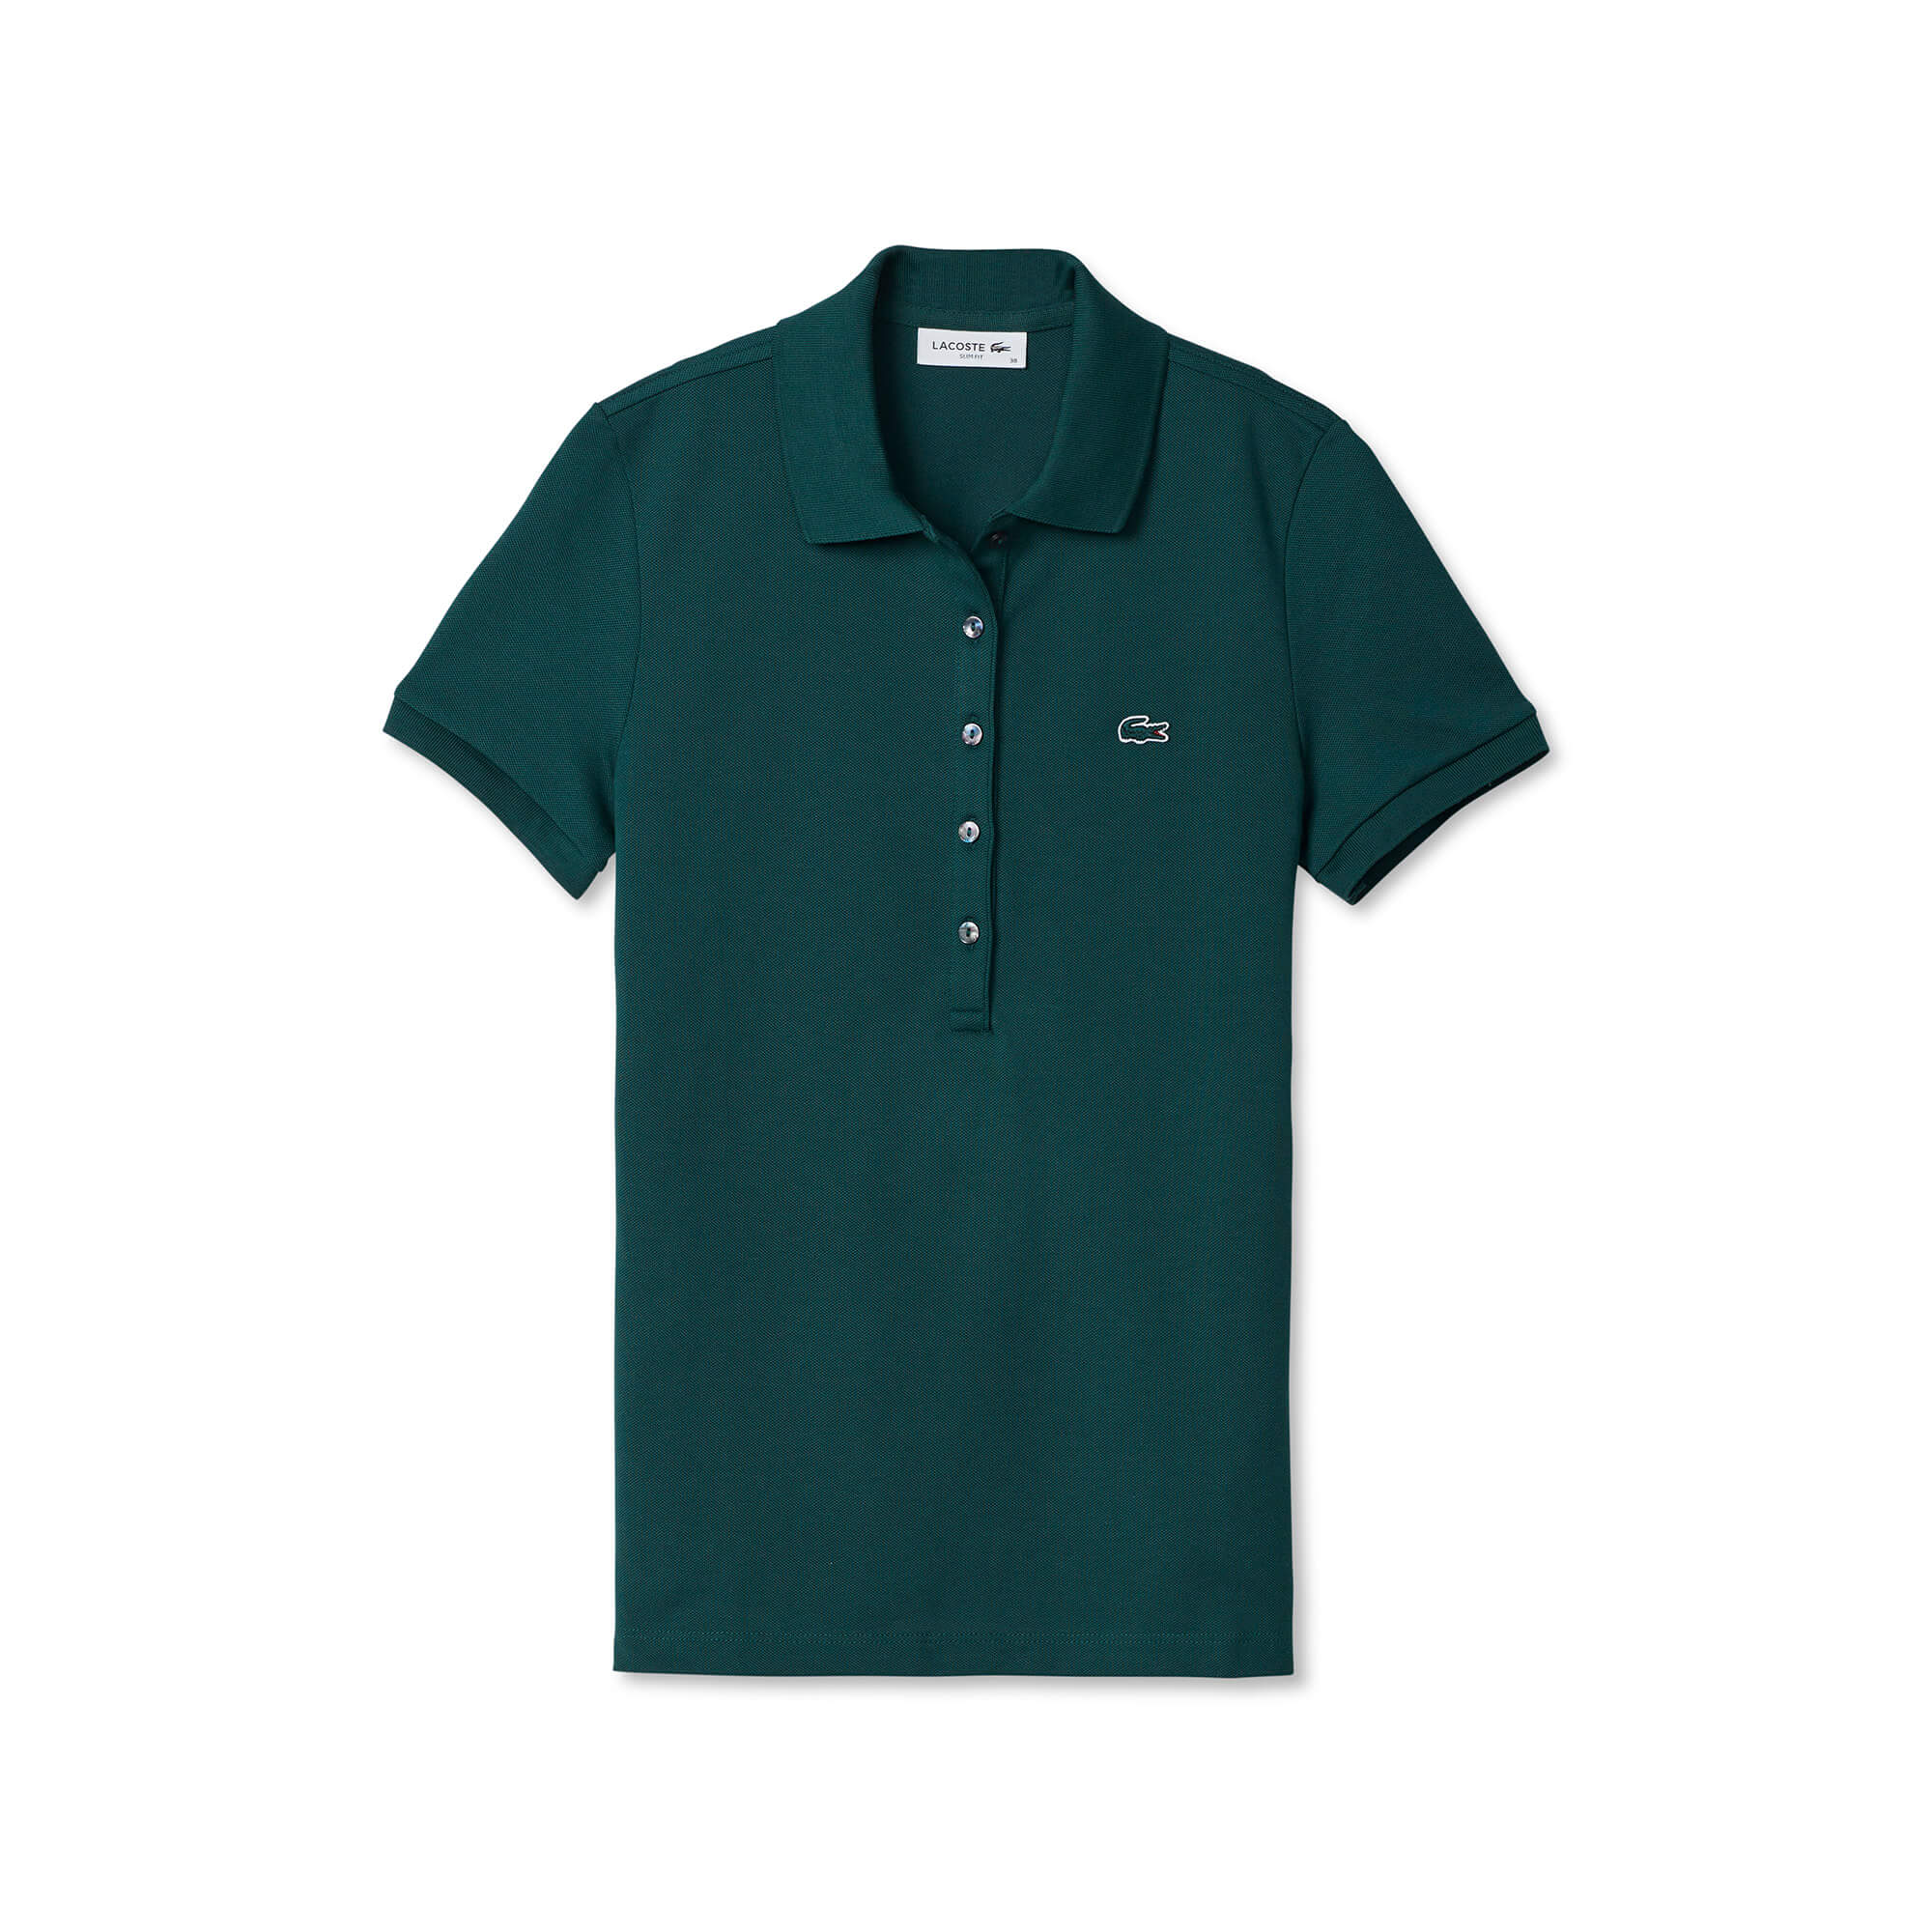 090951c1b1 + 13 cores · Camisa polo ...